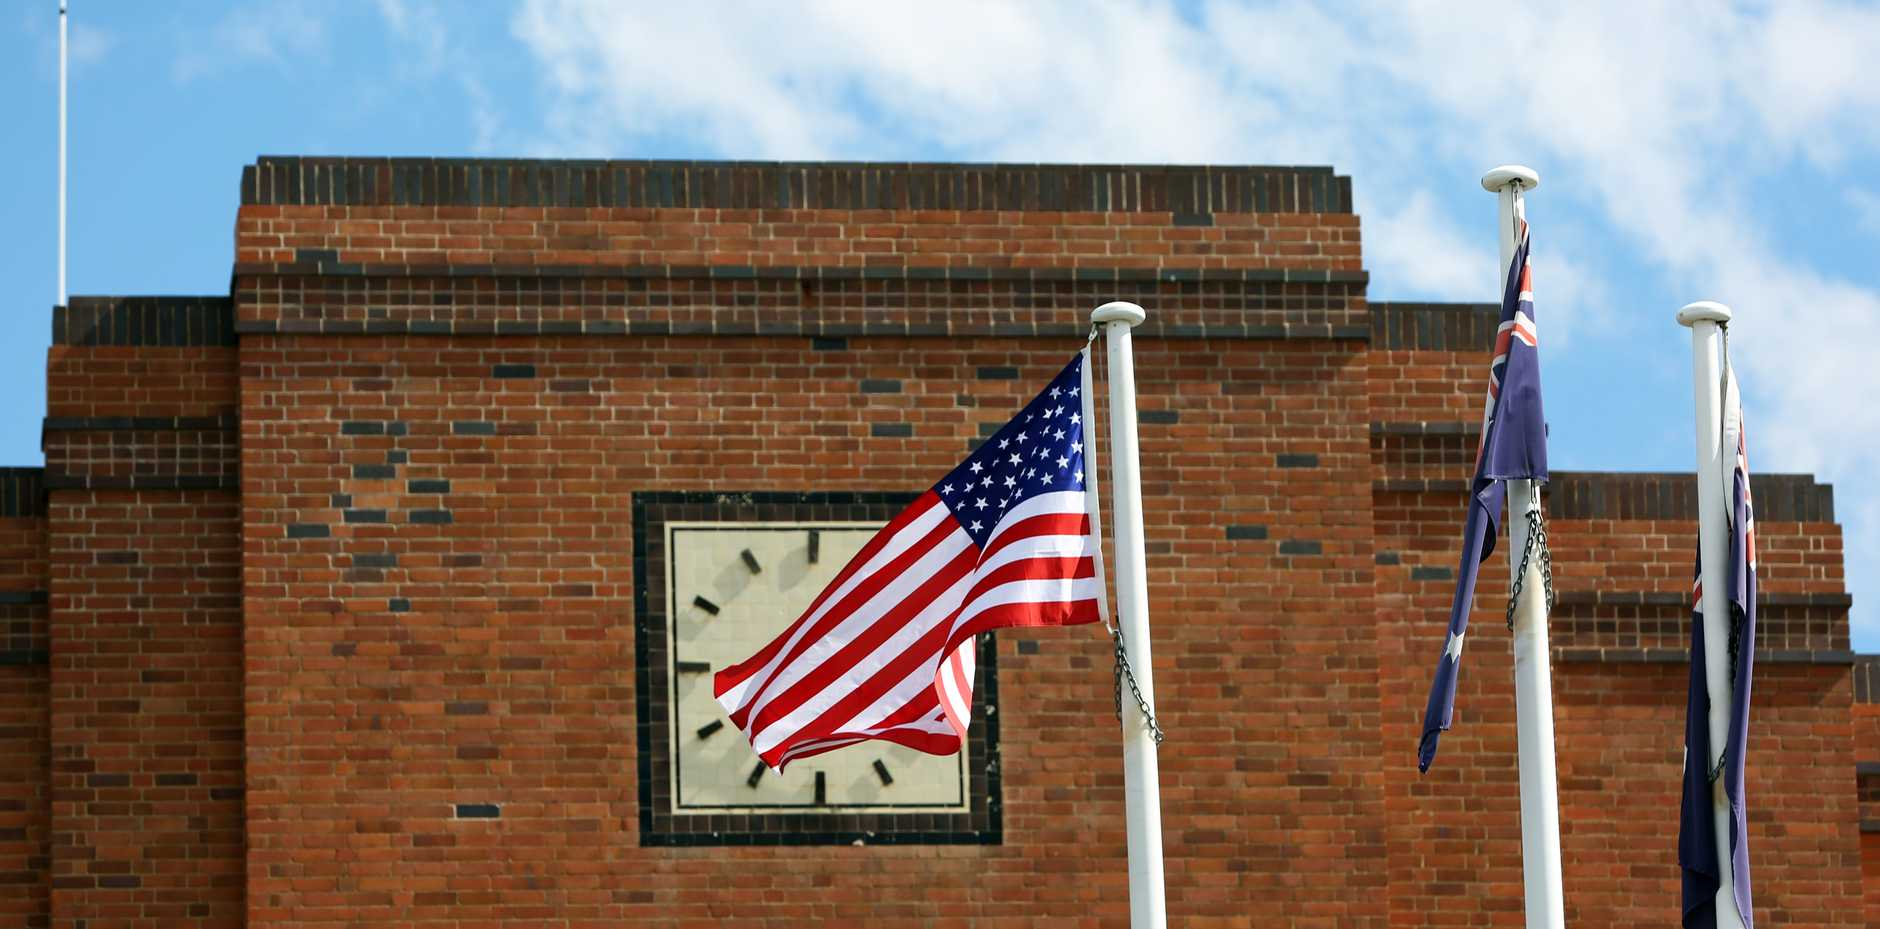 US flag at Rockhampton's City Hall